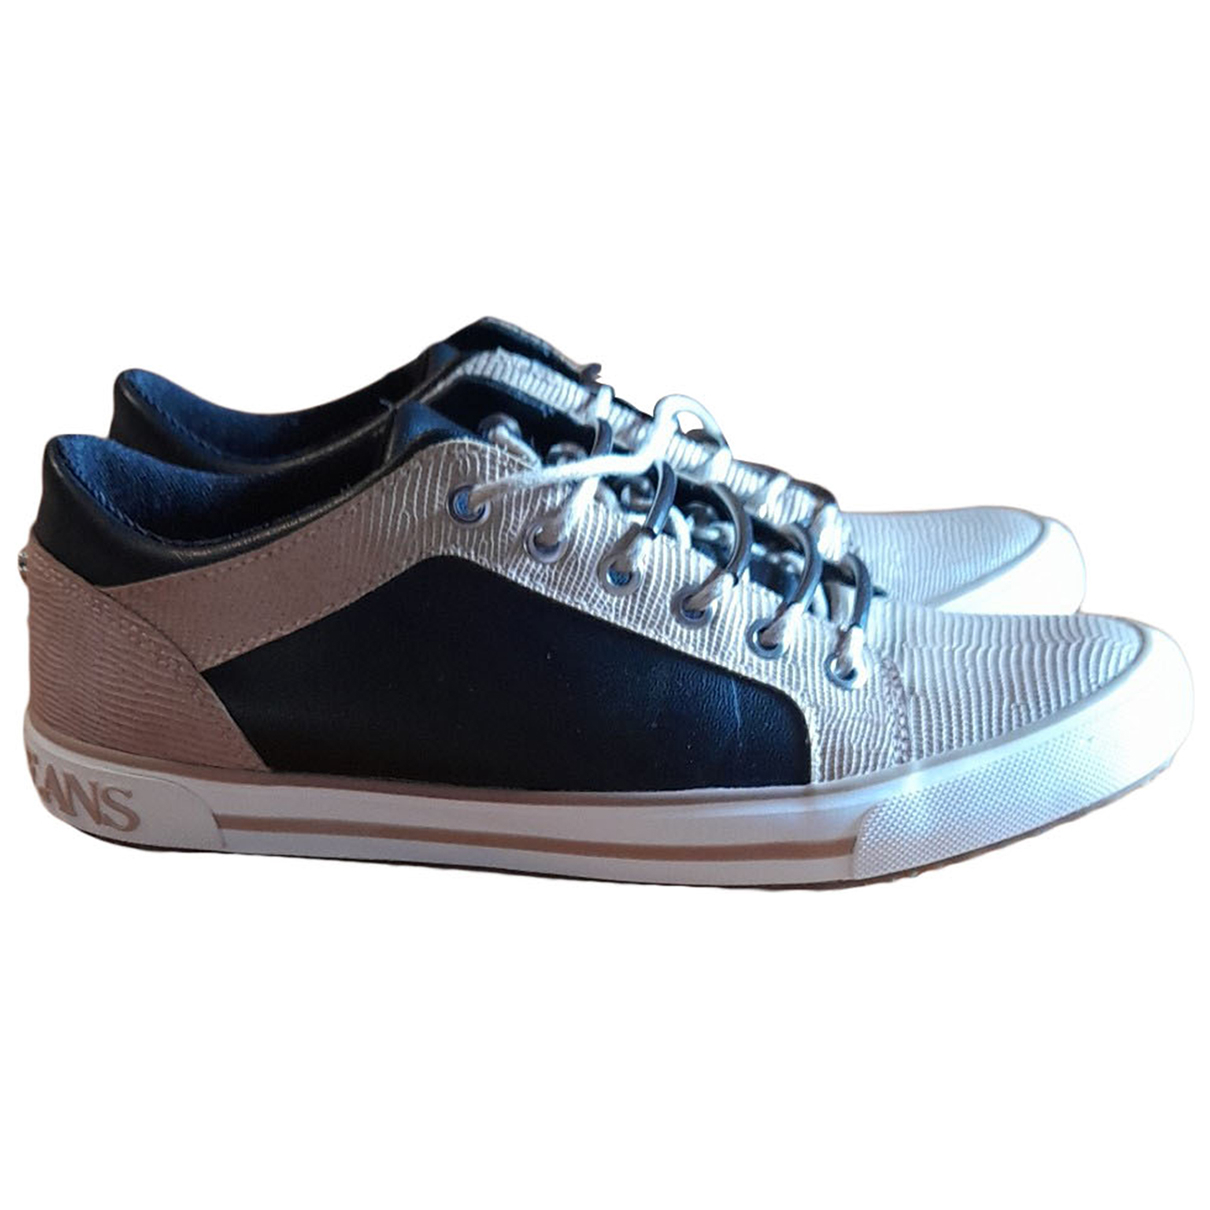 Armani Jeans N Gold Leather Trainers for Women 36 EU